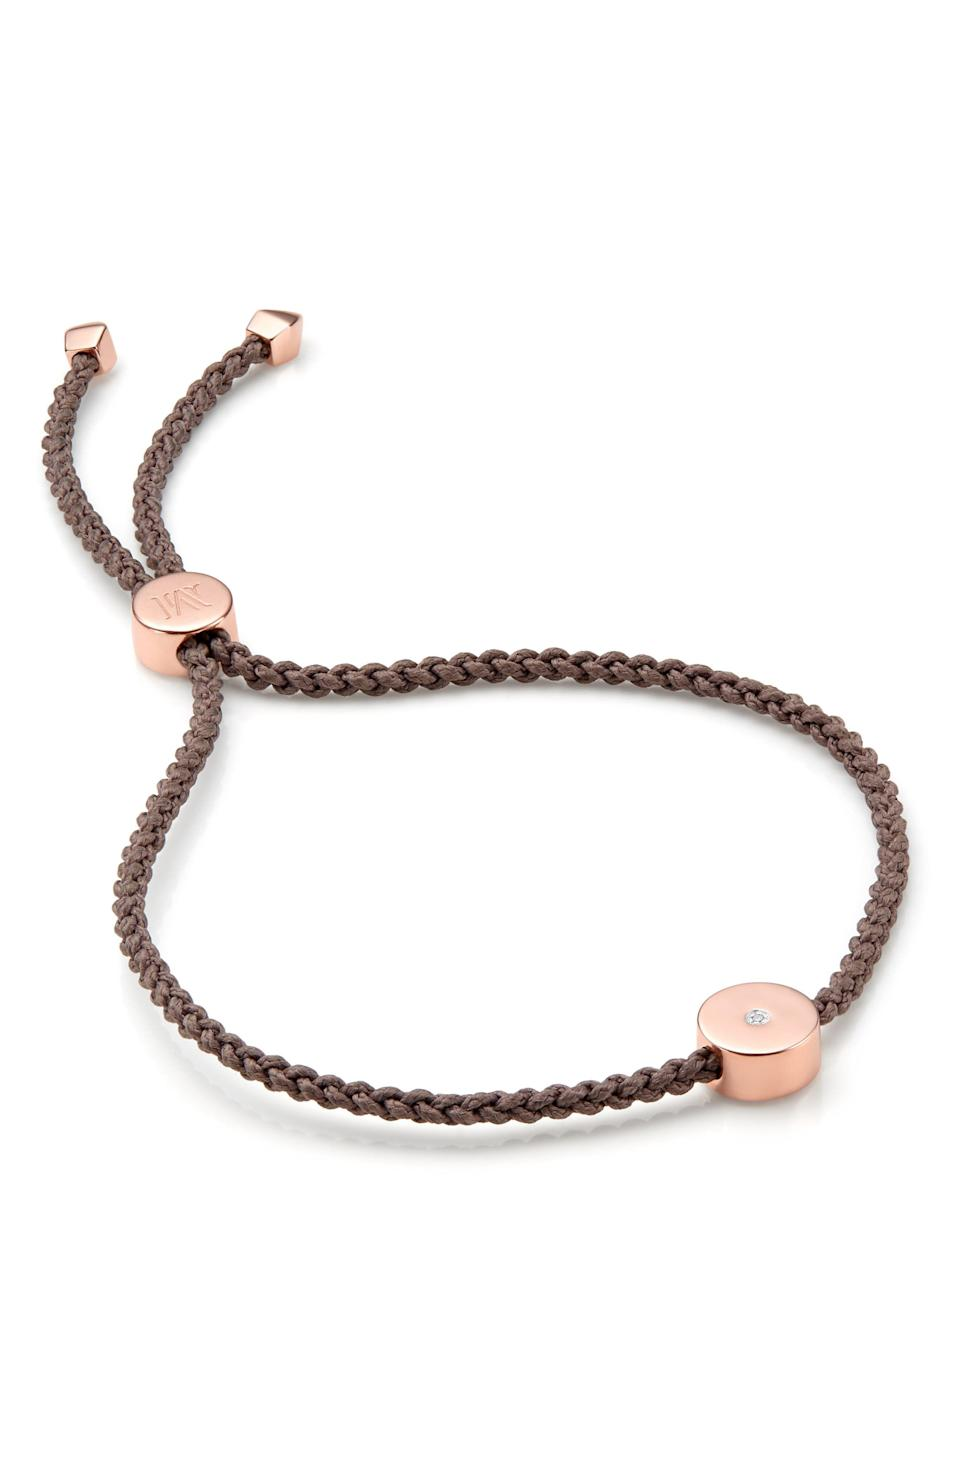 """<p><strong>MONICA VINADER</strong></p><p>nordstrom.com</p><p><a href=""""https://go.redirectingat.com?id=74968X1596630&url=https%3A%2F%2Fwww.nordstrom.com%2Fs%2Fmonica-vinader-linear-solo-diamond-friendship-bracelet%2F5866674&sref=https%3A%2F%2Fwww.townandcountrymag.com%2Fstyle%2Ffashion-trends%2Fg36557314%2Fnordstrom-half-yearly-sale-may-2021%2F"""" rel=""""nofollow noopener"""" target=""""_blank"""" data-ylk=""""slk:Shop Now"""" class=""""link rapid-noclick-resp"""">Shop Now</a></p><p>$90</p><p><em>Original Price: $150</em></p><p><strong>More:</strong> <a href=""""https://www.townandcountrymag.com/style/jewelry-and-watches/g34464609/kate-middleton-meghan-markle-wear-monica-vinader-jewelry/"""" rel=""""nofollow noopener"""" target=""""_blank"""" data-ylk=""""slk:Meghan Markle and Kate Middleton Both Wear Monica Vinader"""" class=""""link rapid-noclick-resp"""">Meghan Markle and Kate Middleton Both Wear Monica Vinader</a><br></p>"""